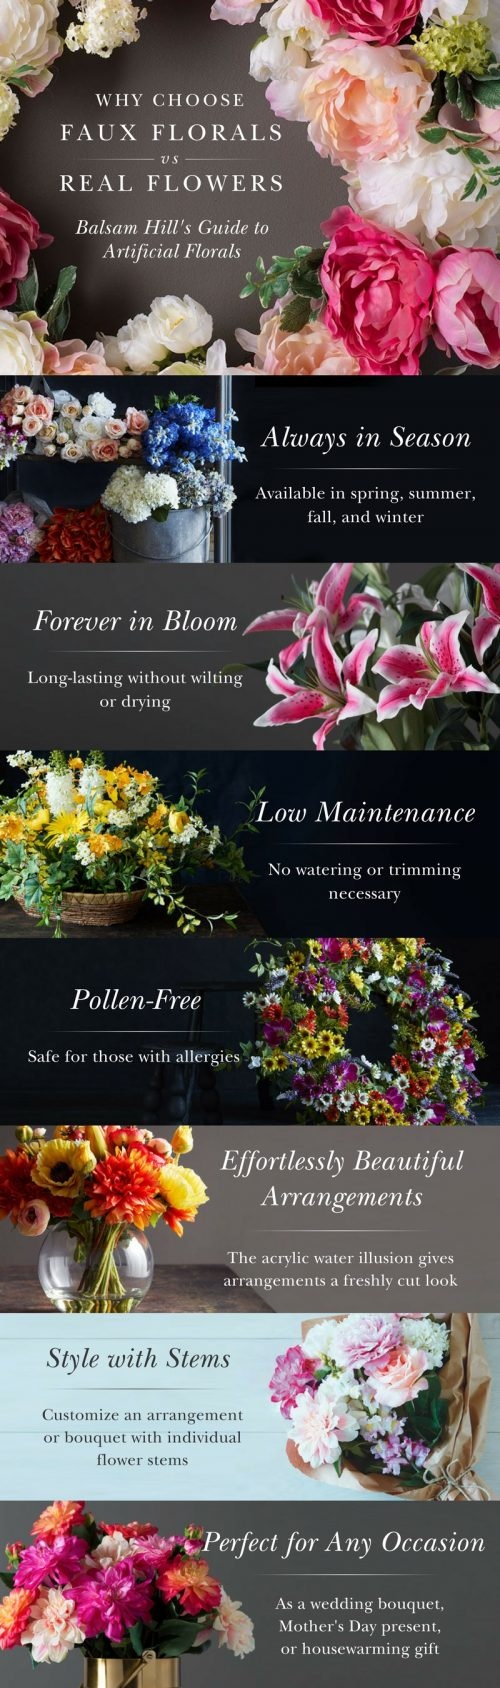 benefits of artificial flowers vs real flowers